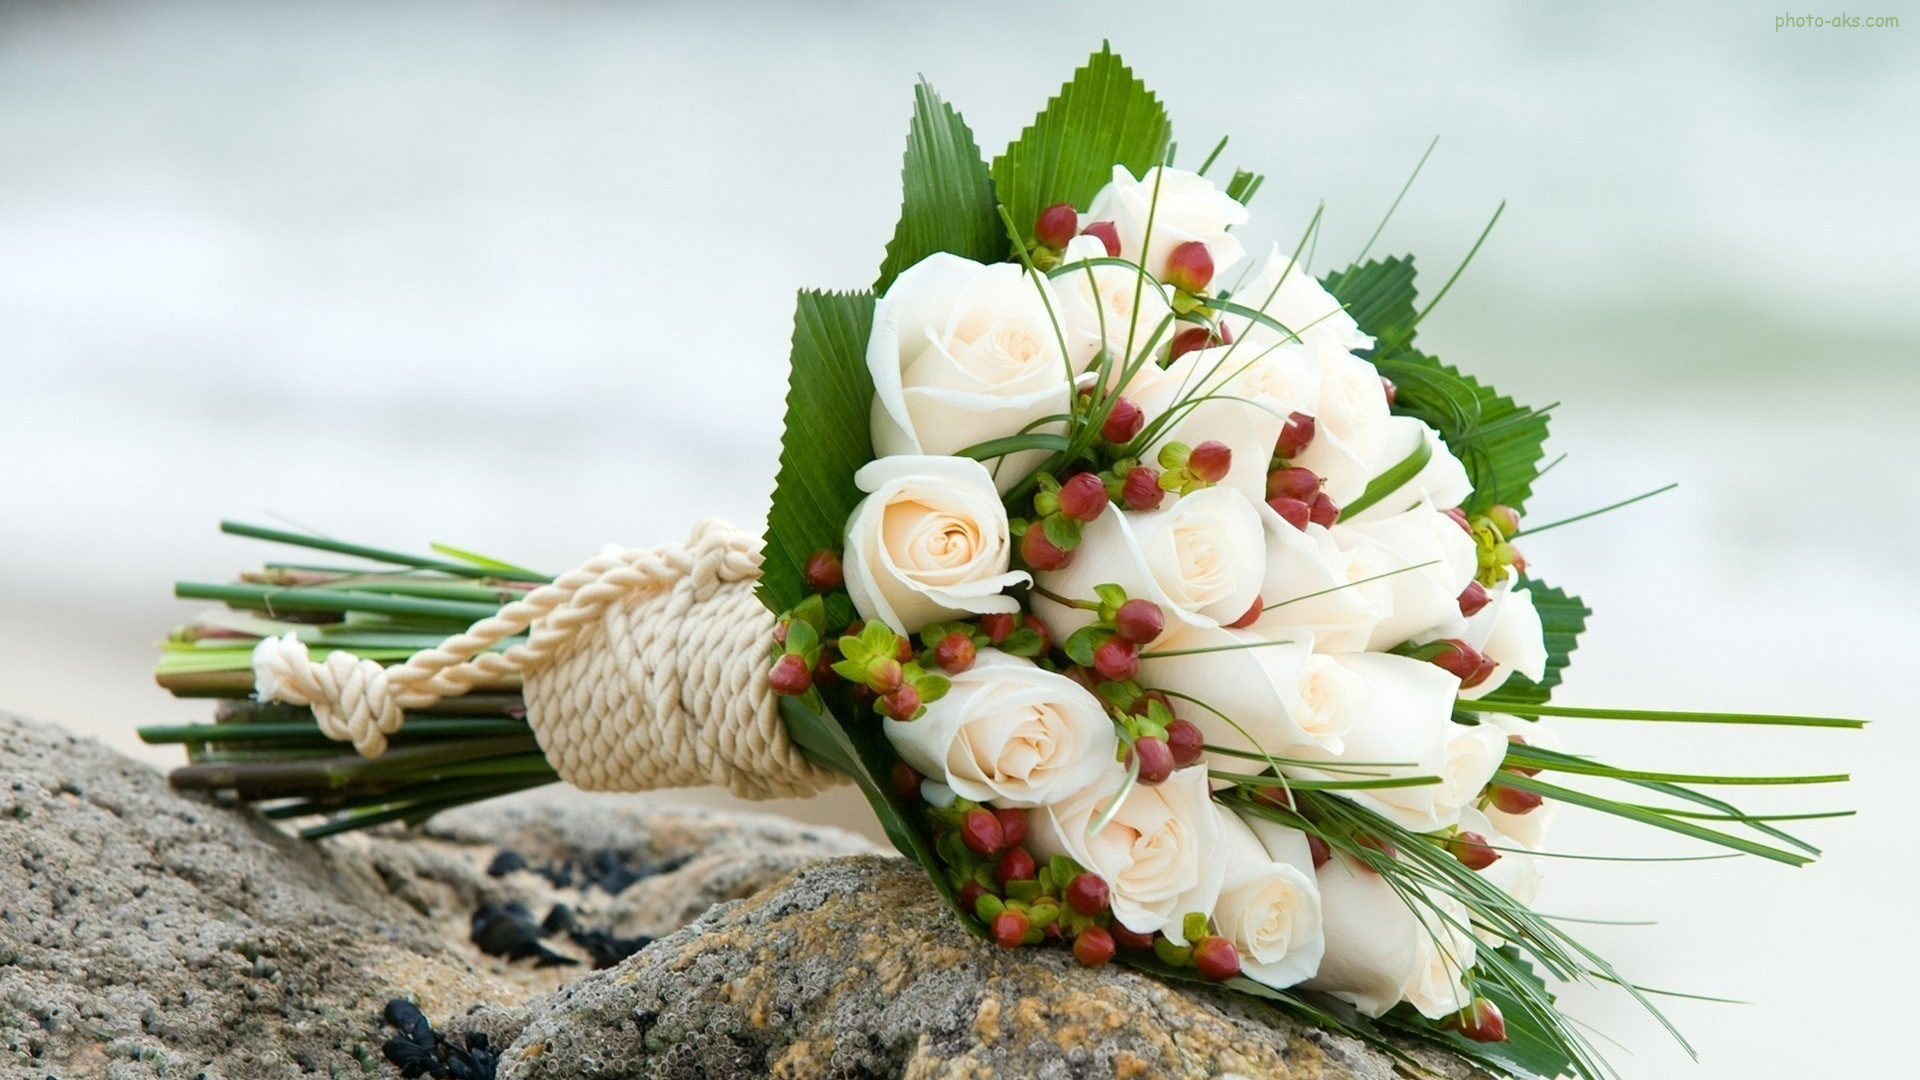 http://pic.photo-aks.com/photo/nature/flowers/rose/large/wedding_white_rose_bouquet.jpg